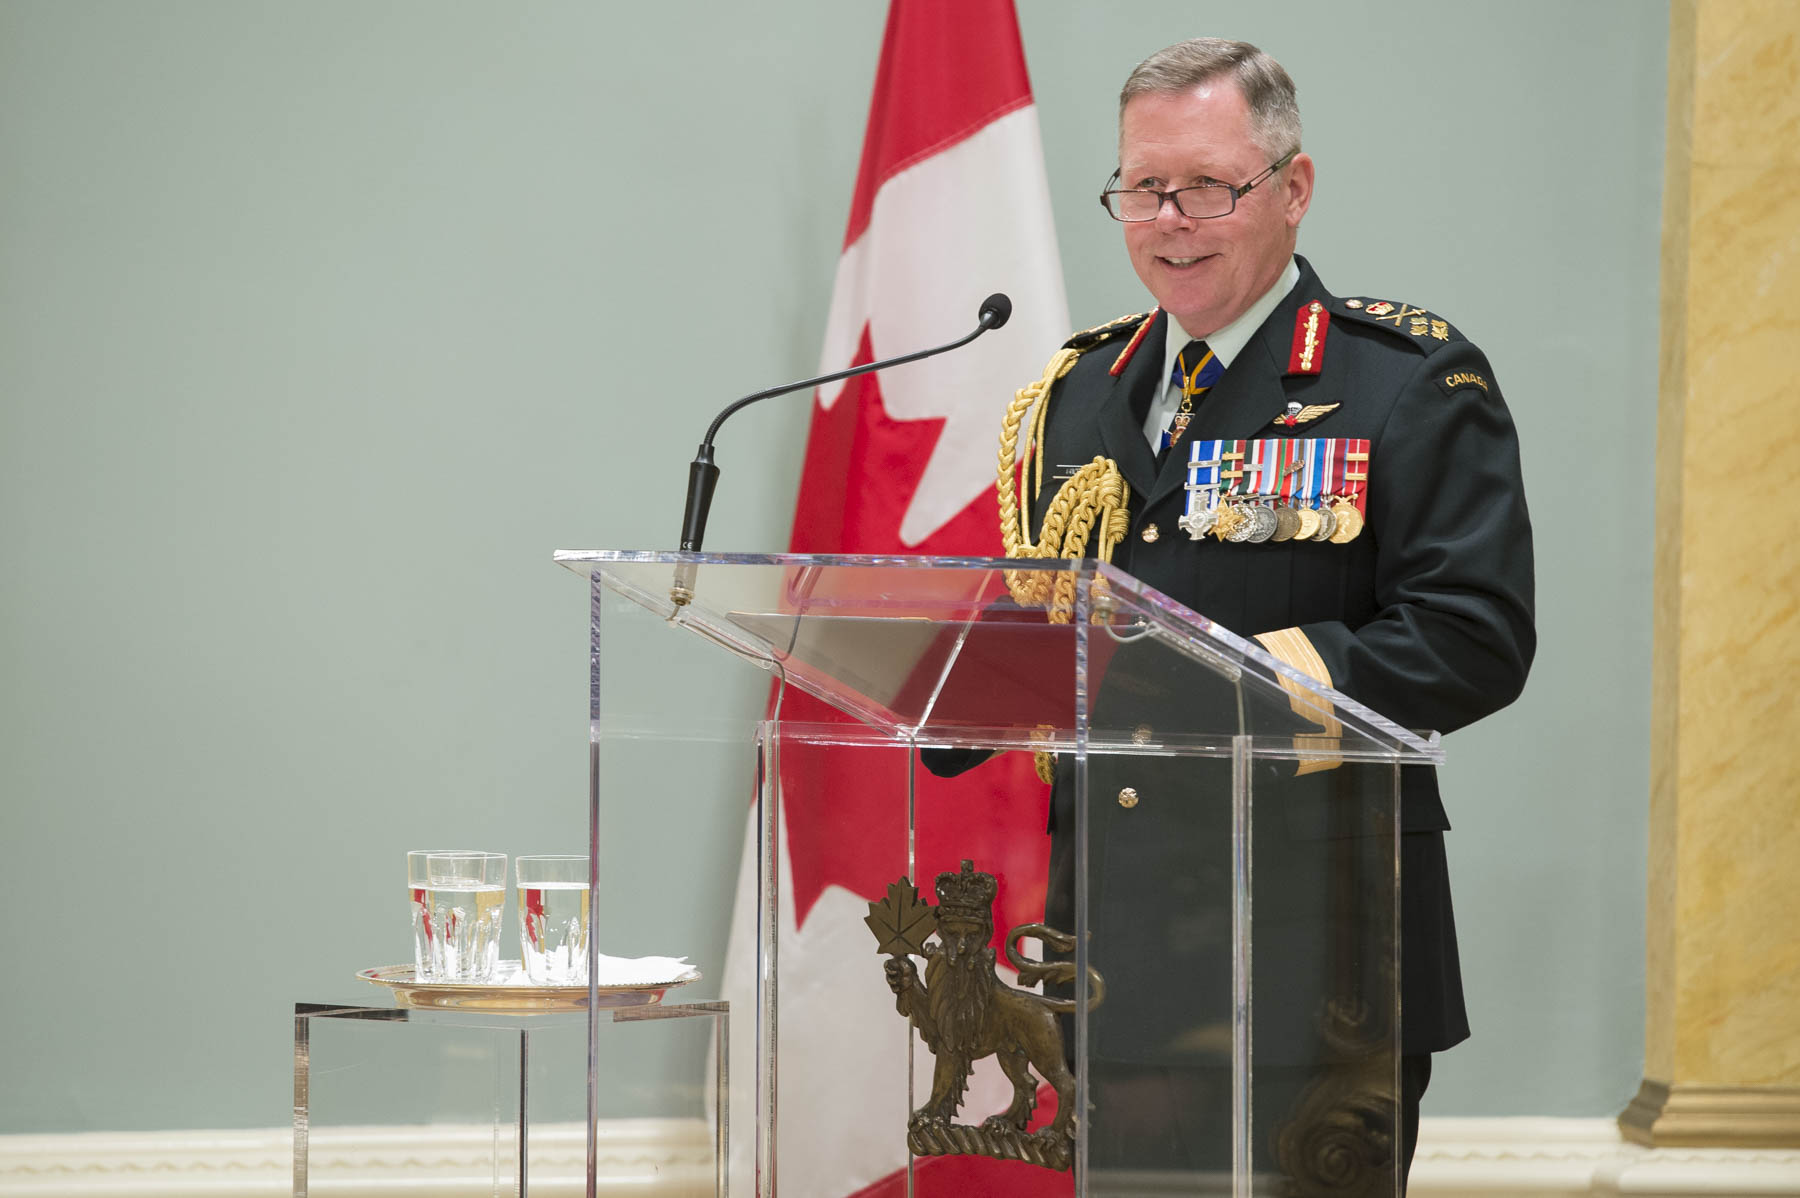 Chief of the Defence Staff General Jonathan Vance congratulated members that were honoured during the ceremony.